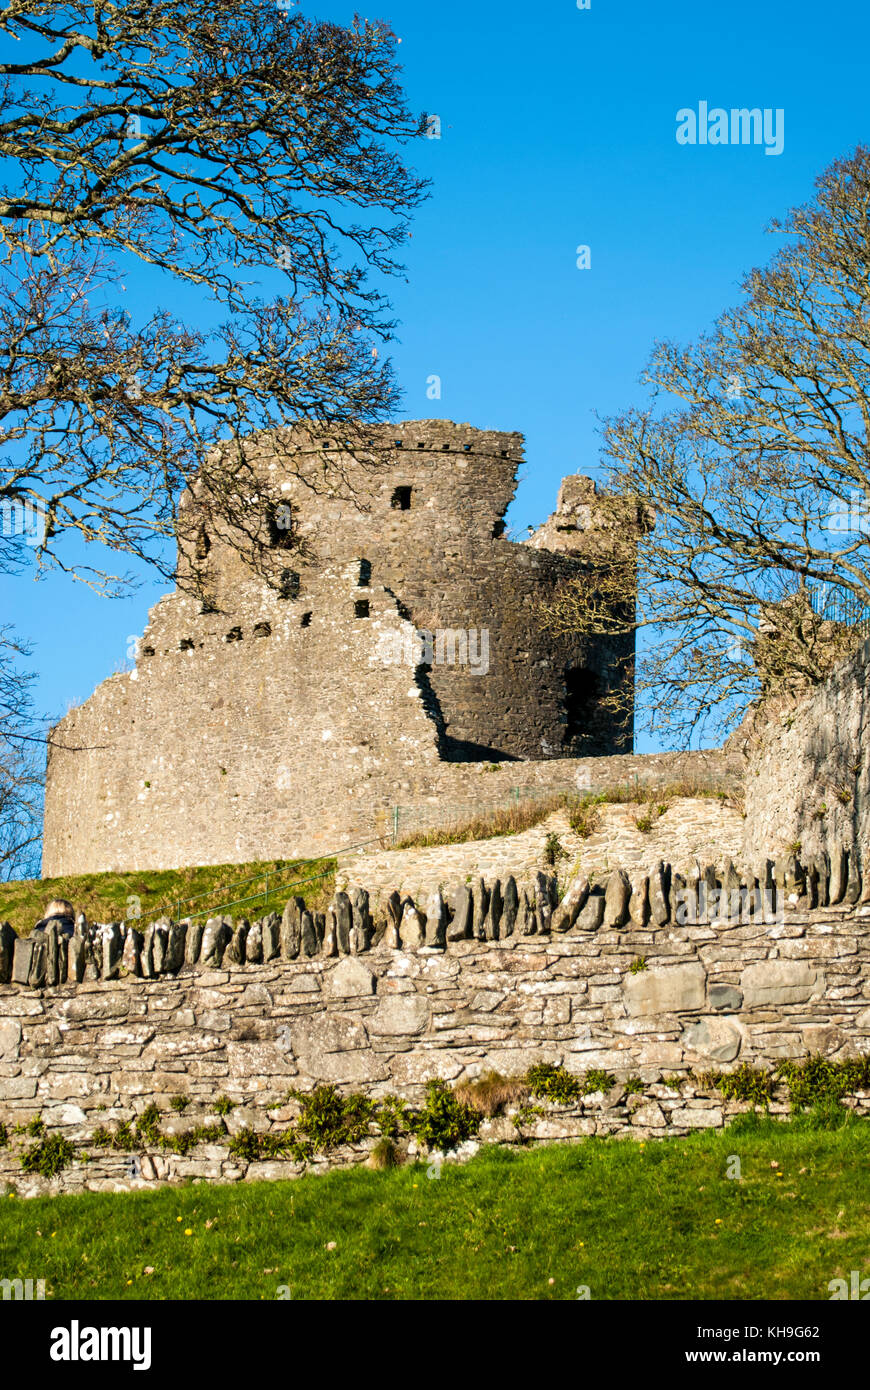 DUNDRUM - NORTHERN IRELAND - NOVEMBER 11, 2017 - Dundrum Castle ruins. Situated above the town of Dundrum, County - Stock Image